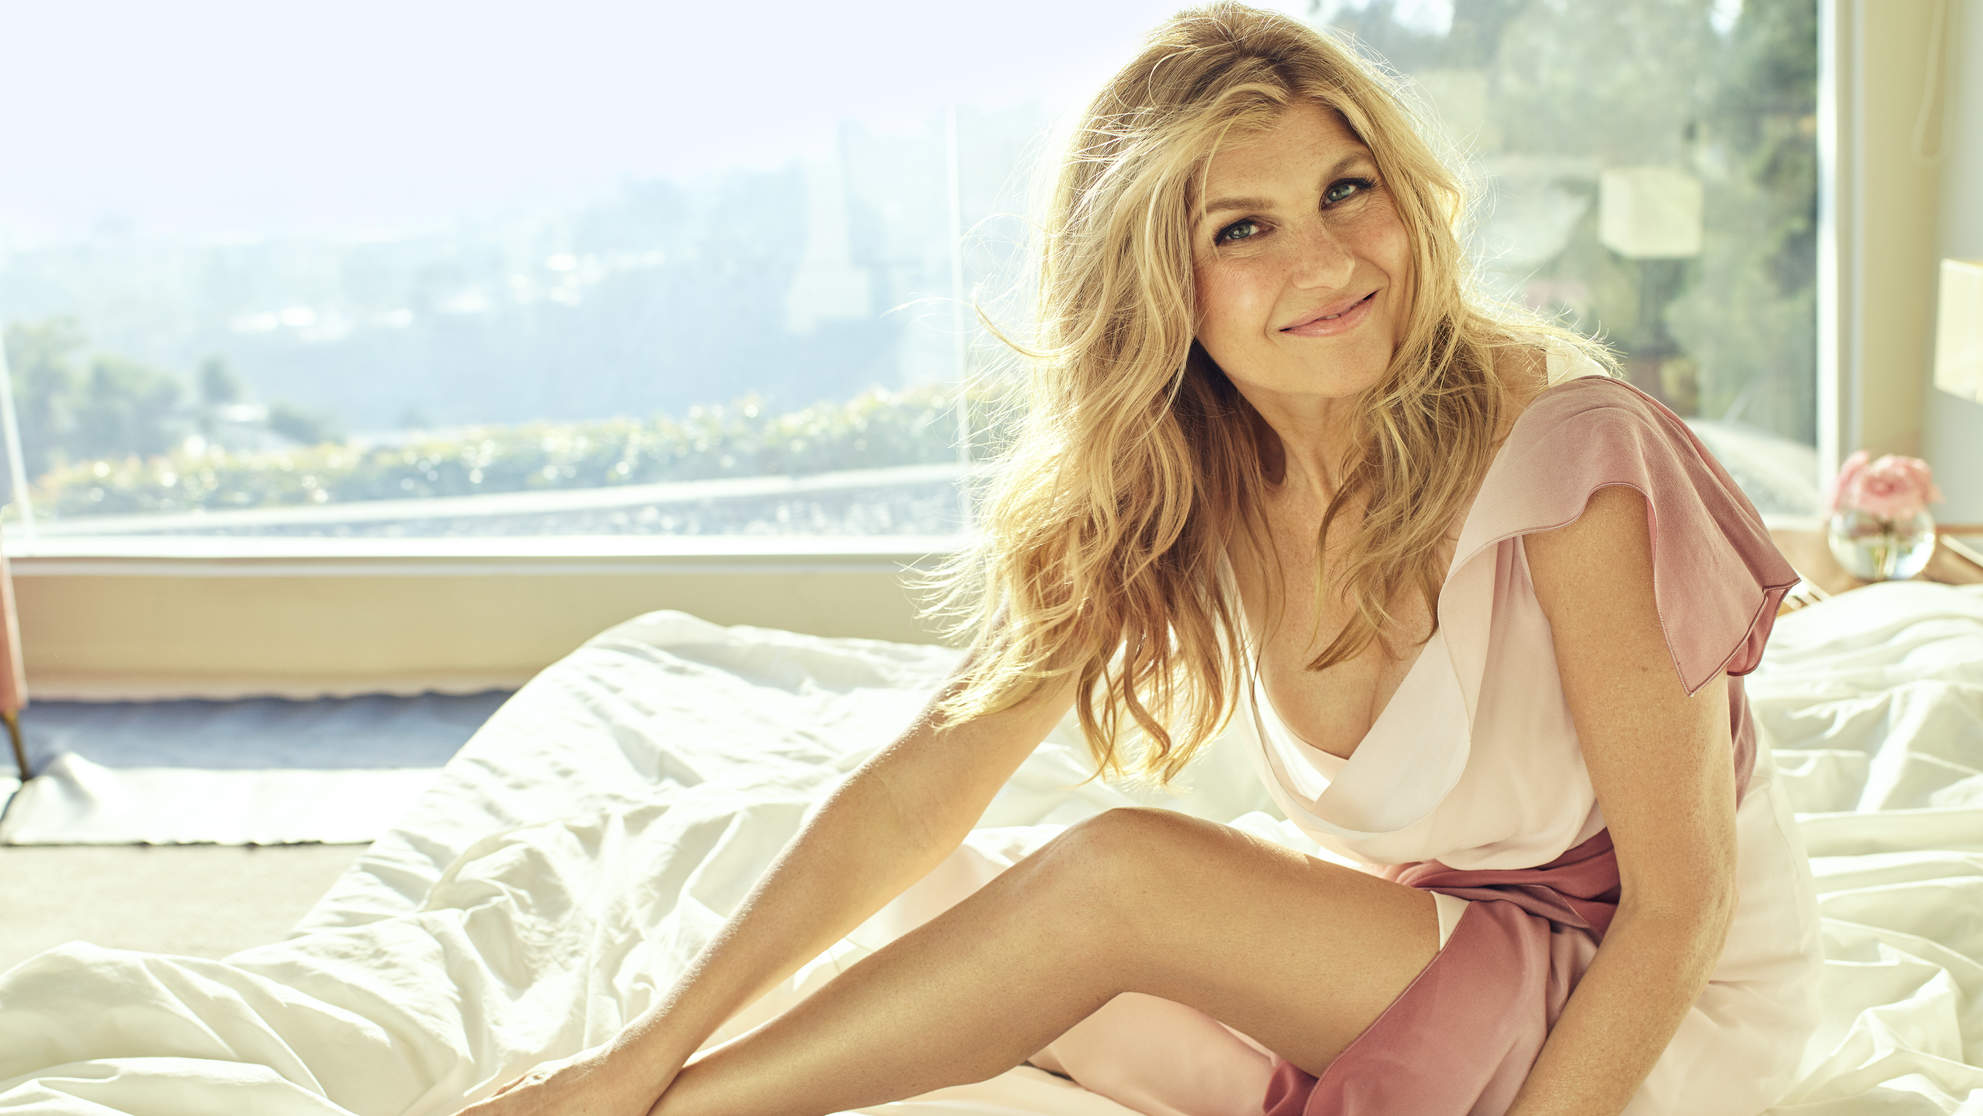 Connie Britton Opens Up About How Her Diet and Body Have Changed After 50